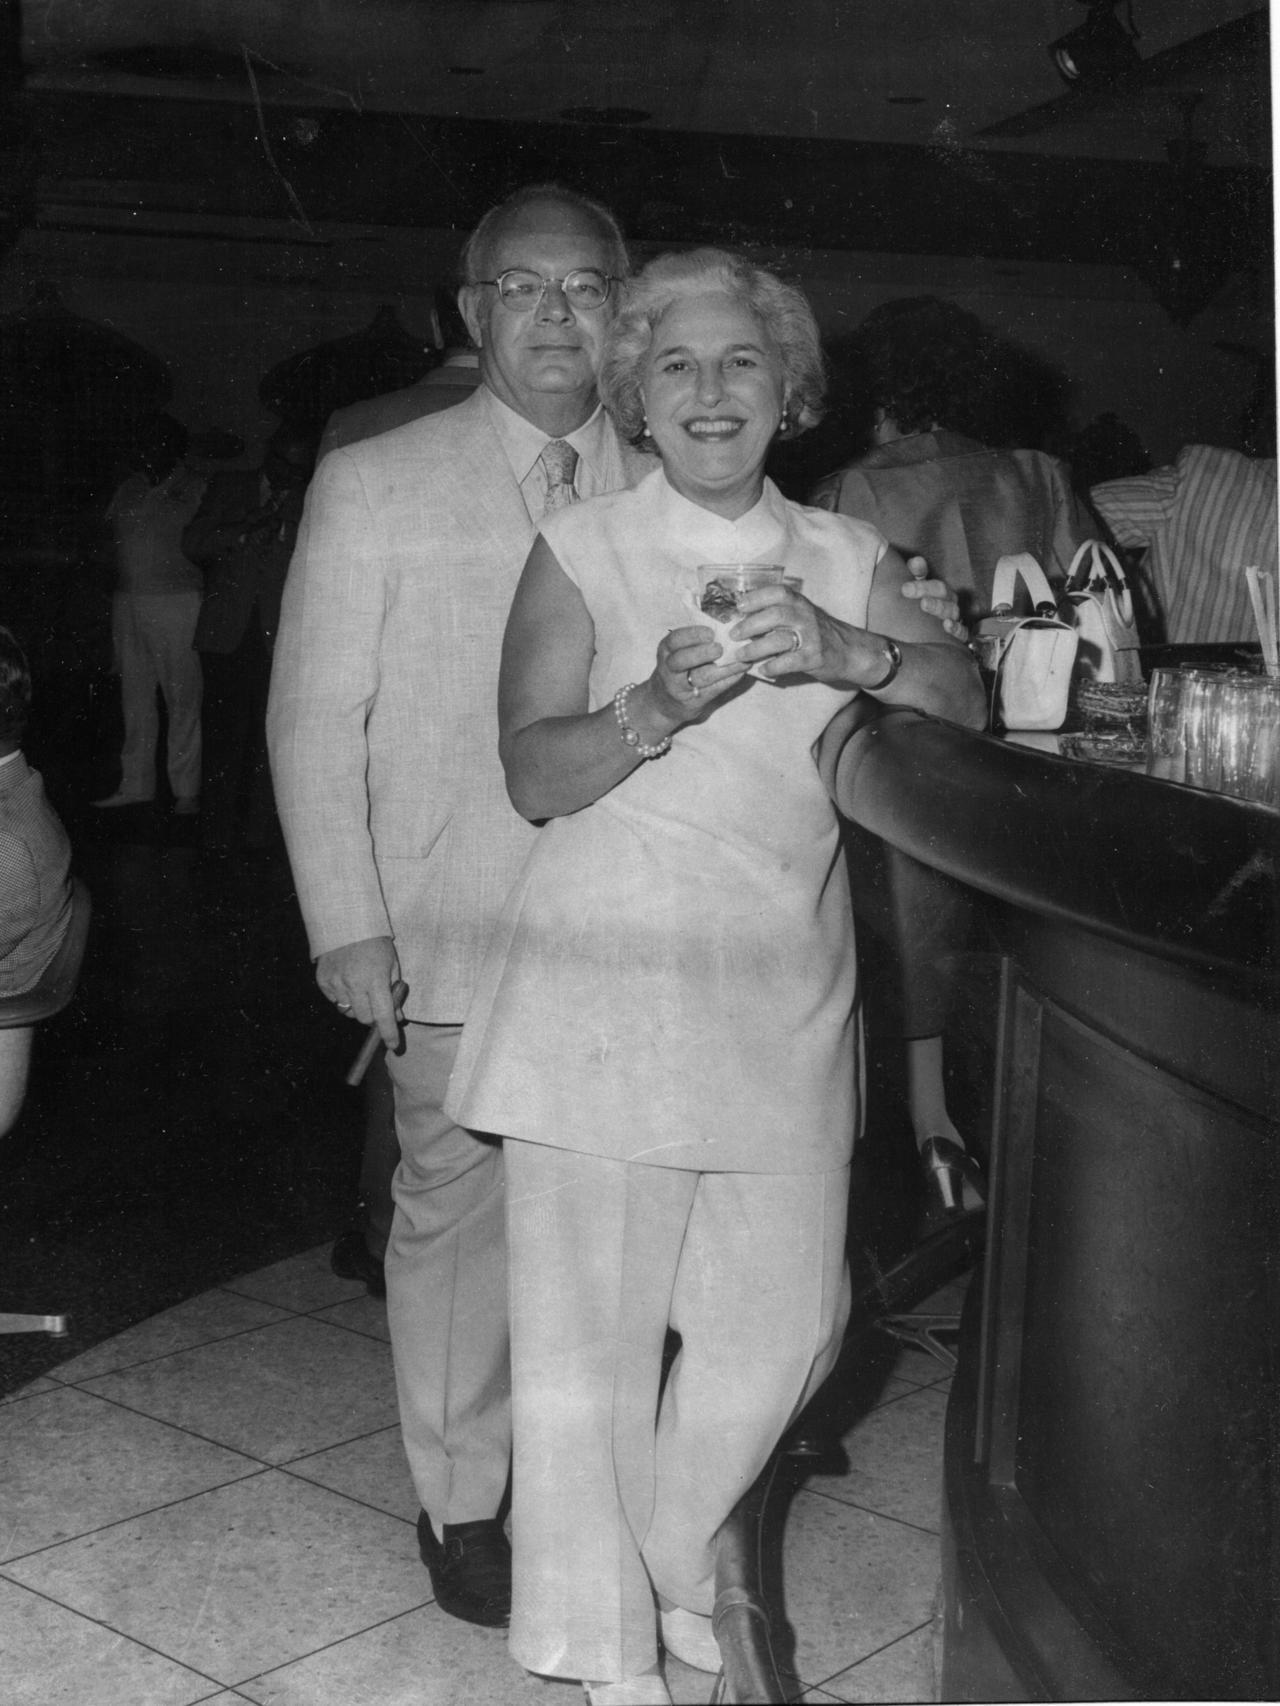 Edna and Gene in Puerto Rico